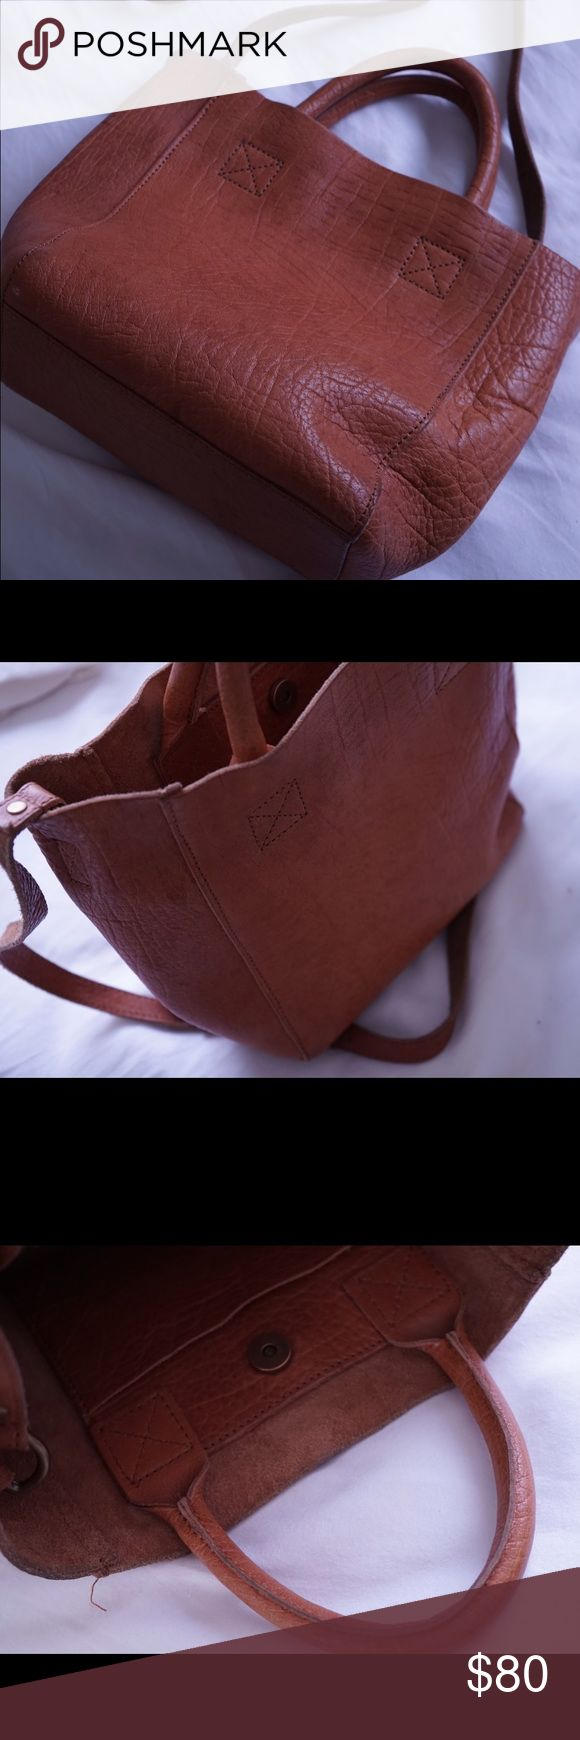 Urban Outfitters BDG Mini Leather Tote Bag Tan Urban Outfitters BDG Mini Soft Leather Tote Bag (used, unlined interior with magnetic snap closure) Urban Outfitters Bags Crossbody Bags